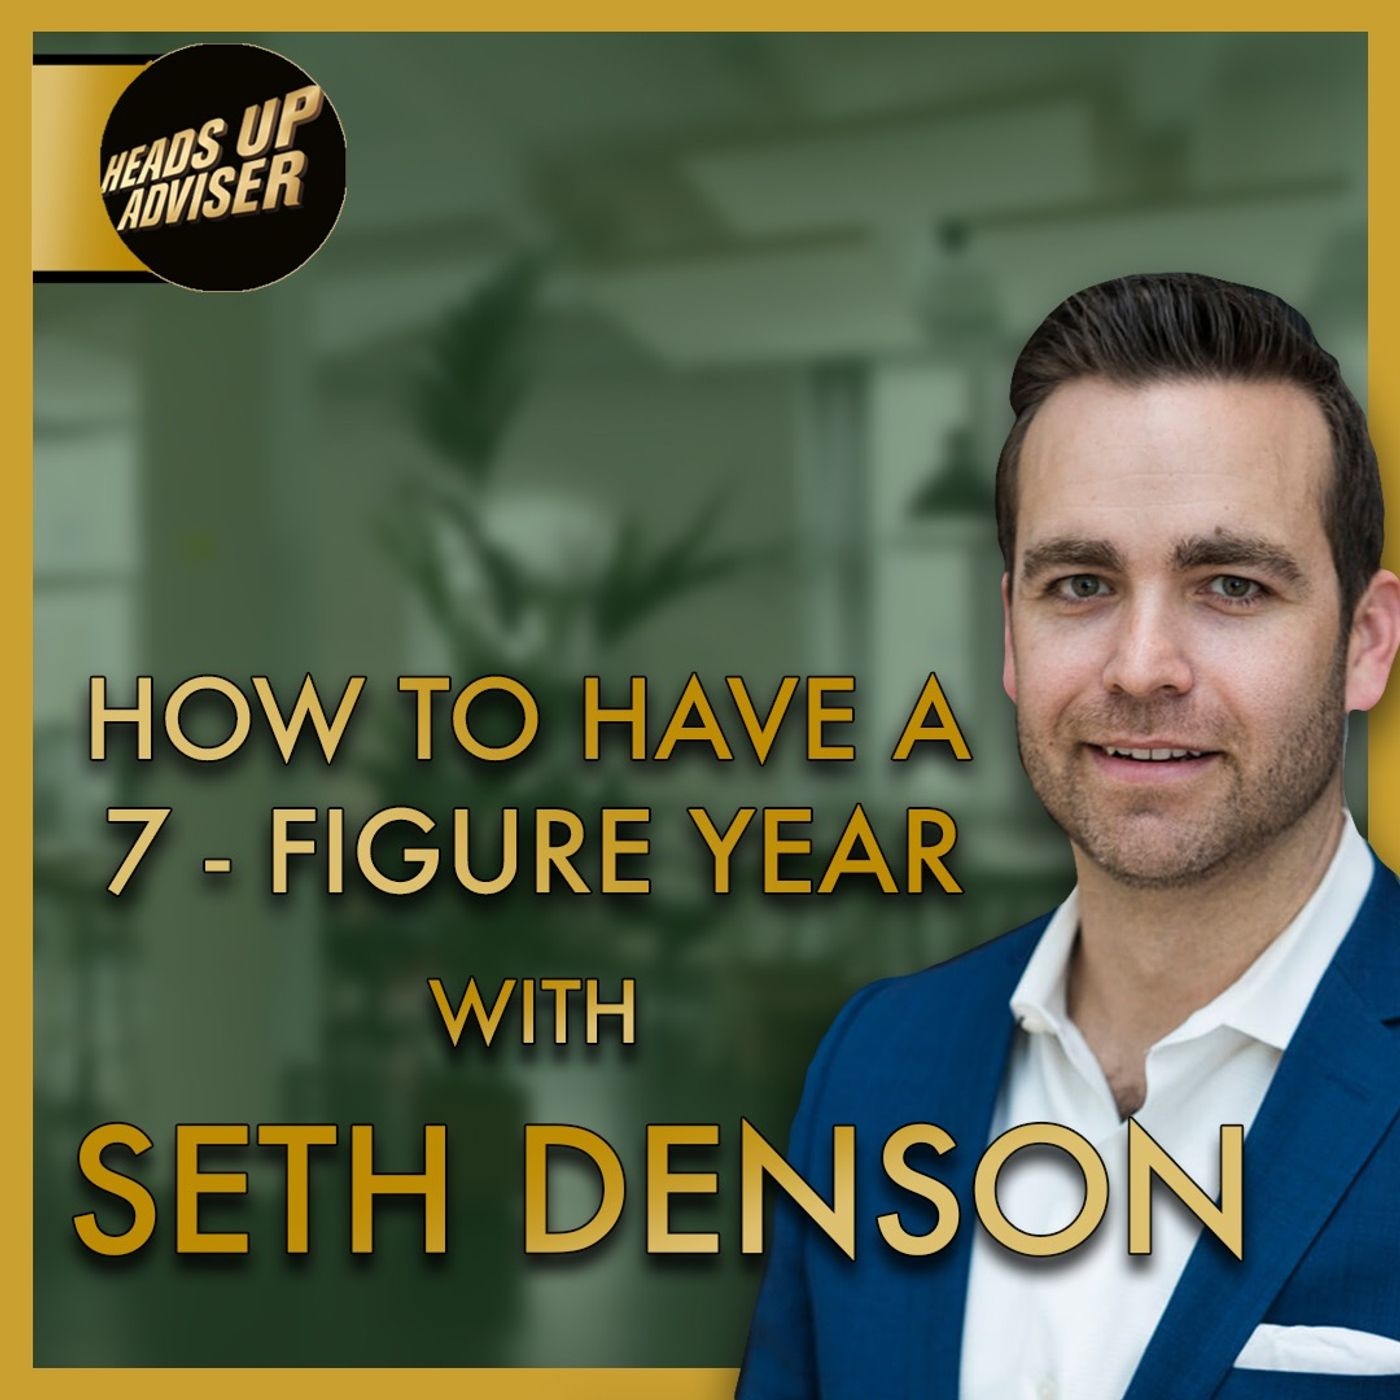 How To Have A 7-Figure Year with Seth Denson